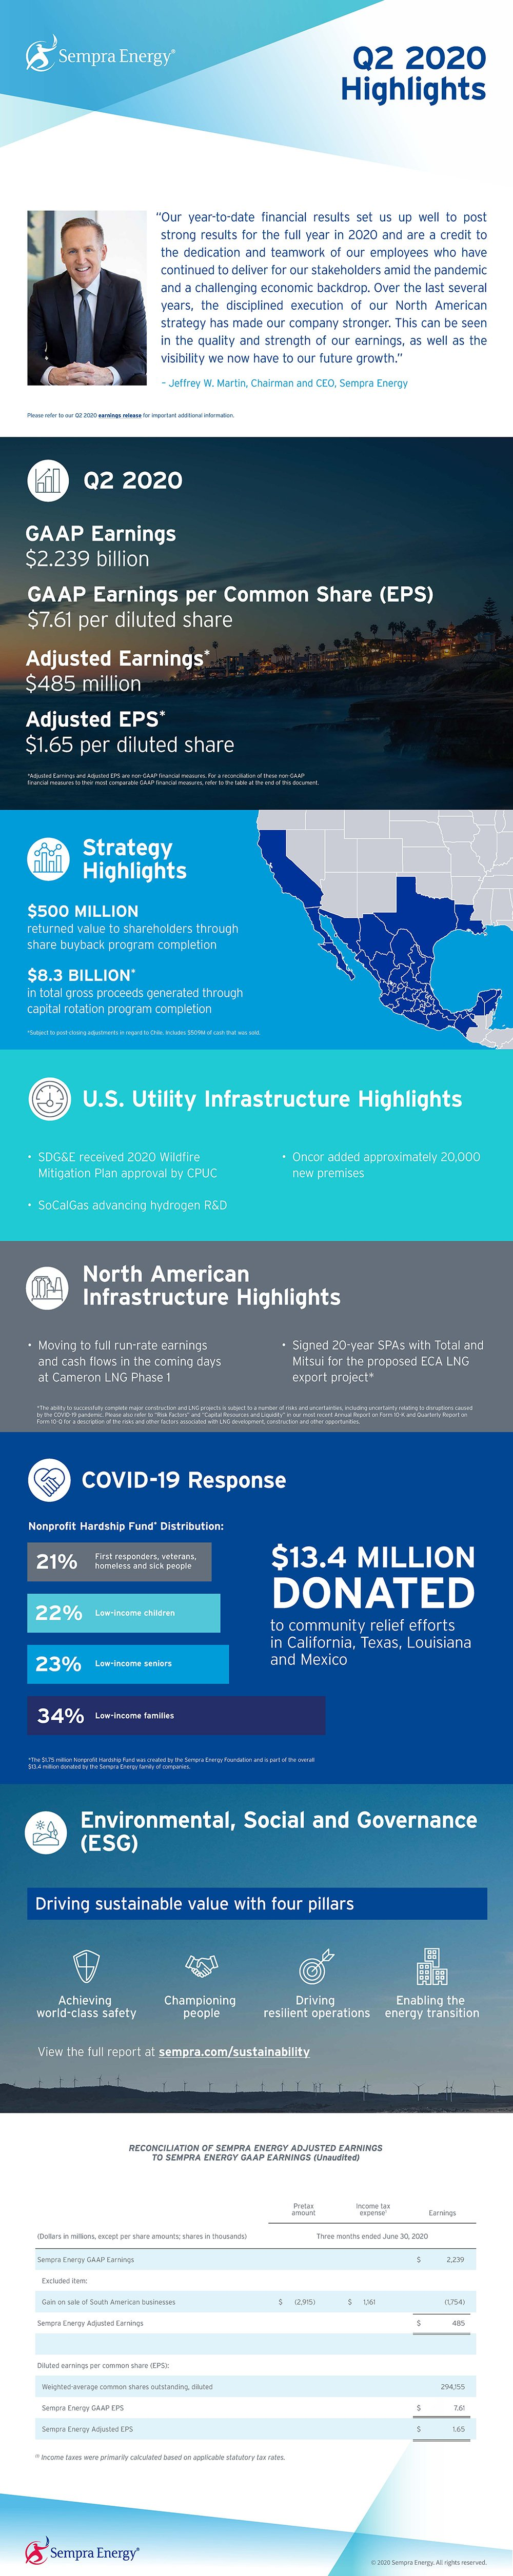 Sempra Energy's Q2 2020 Earnings Highlights Infographic